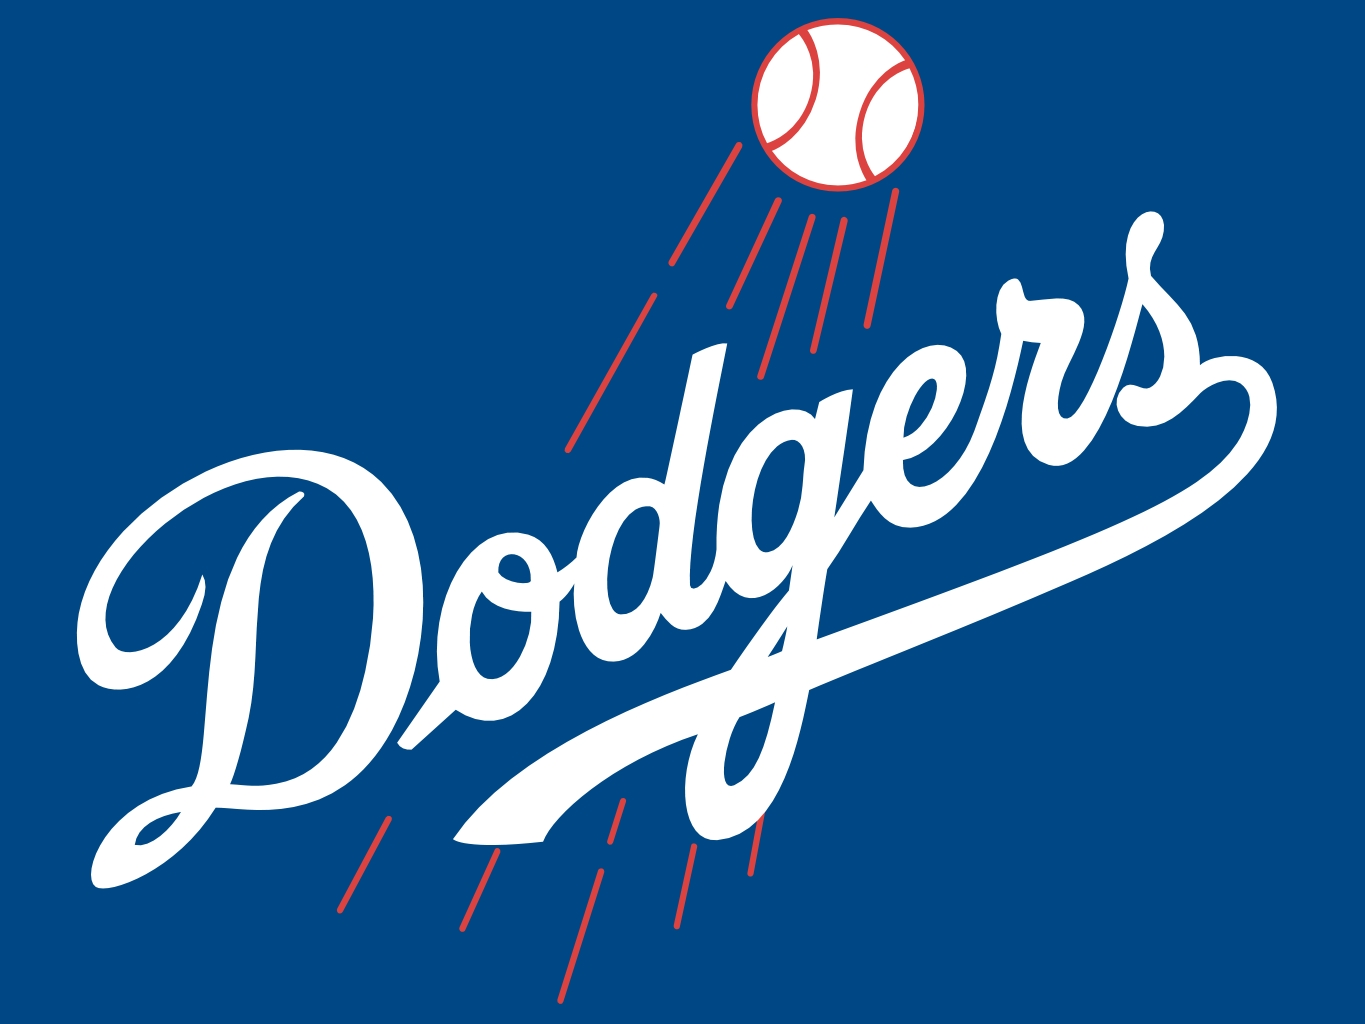 la dodgers organizational depth charts rosters  salaries majors  minors mlb reports